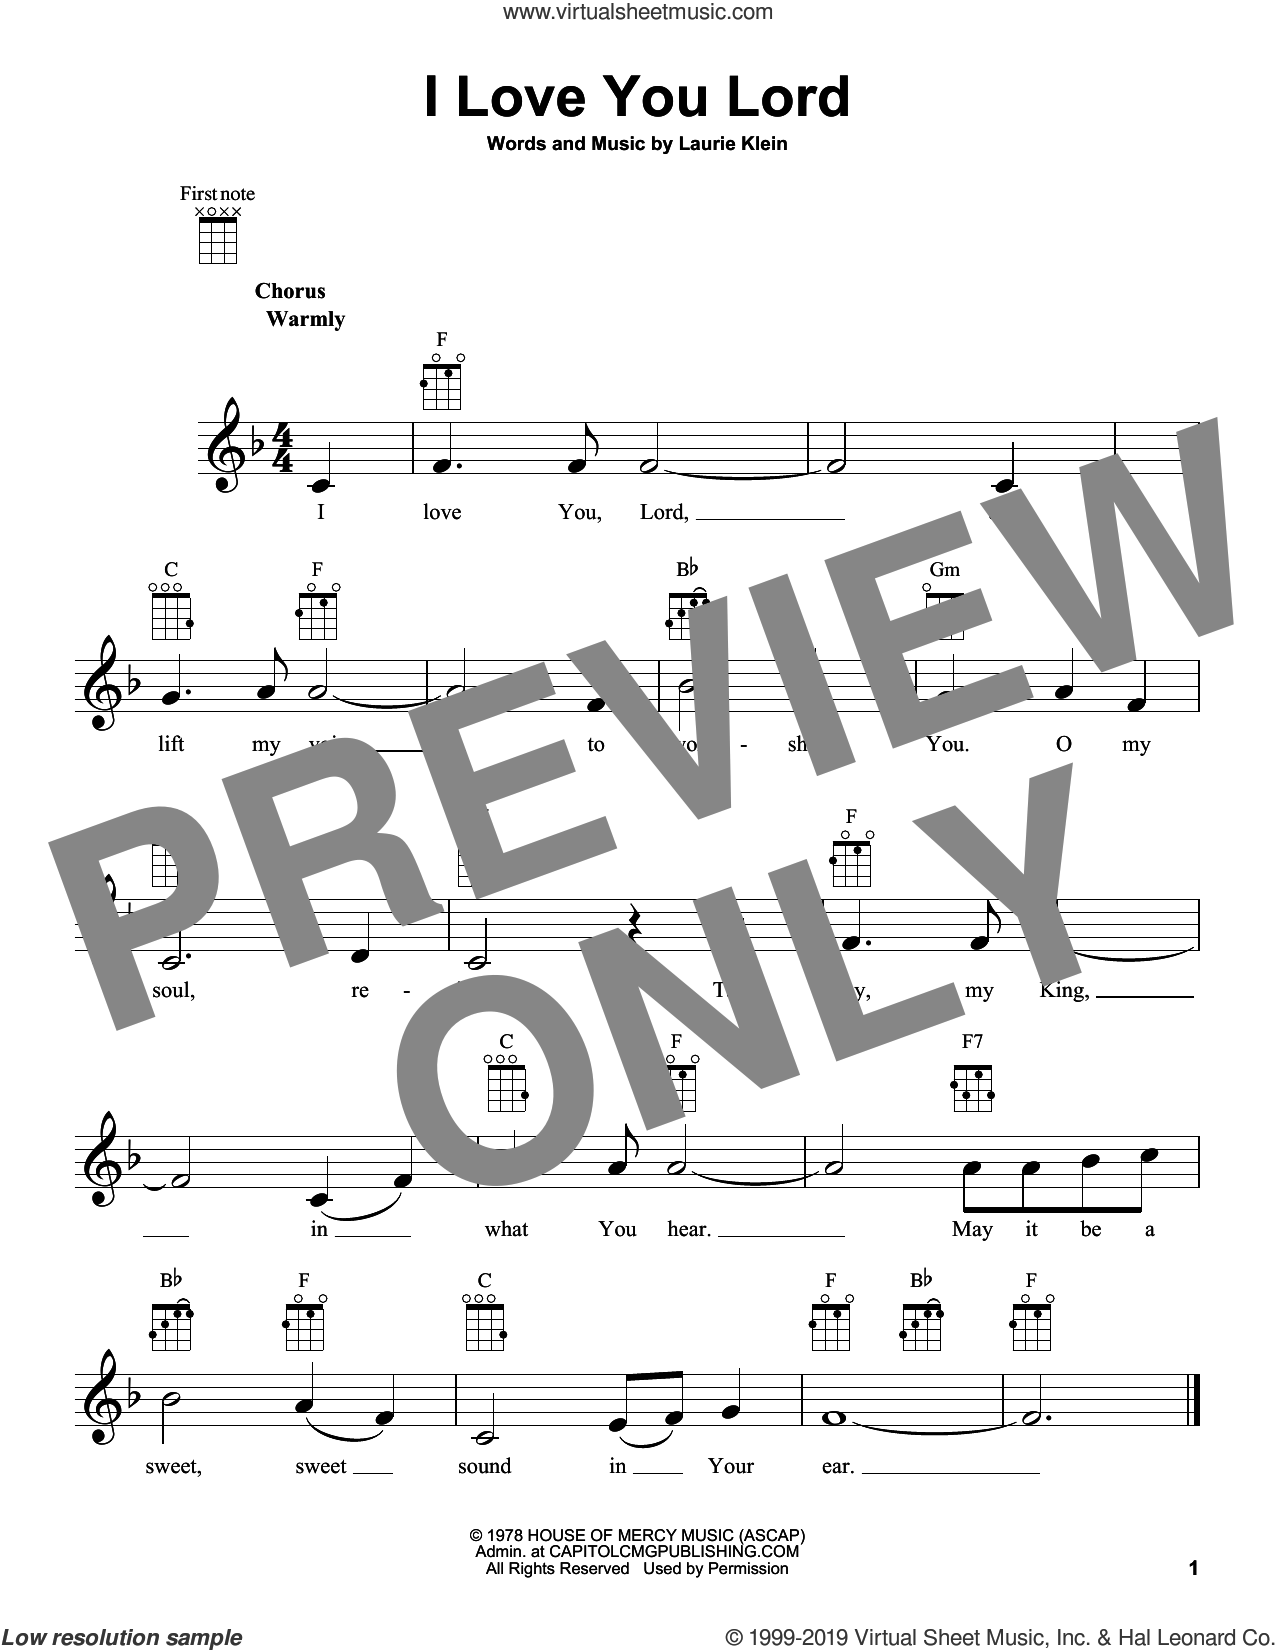 I Love You Lord sheet music for ukulele by Laurie Klein, intermediate skill level